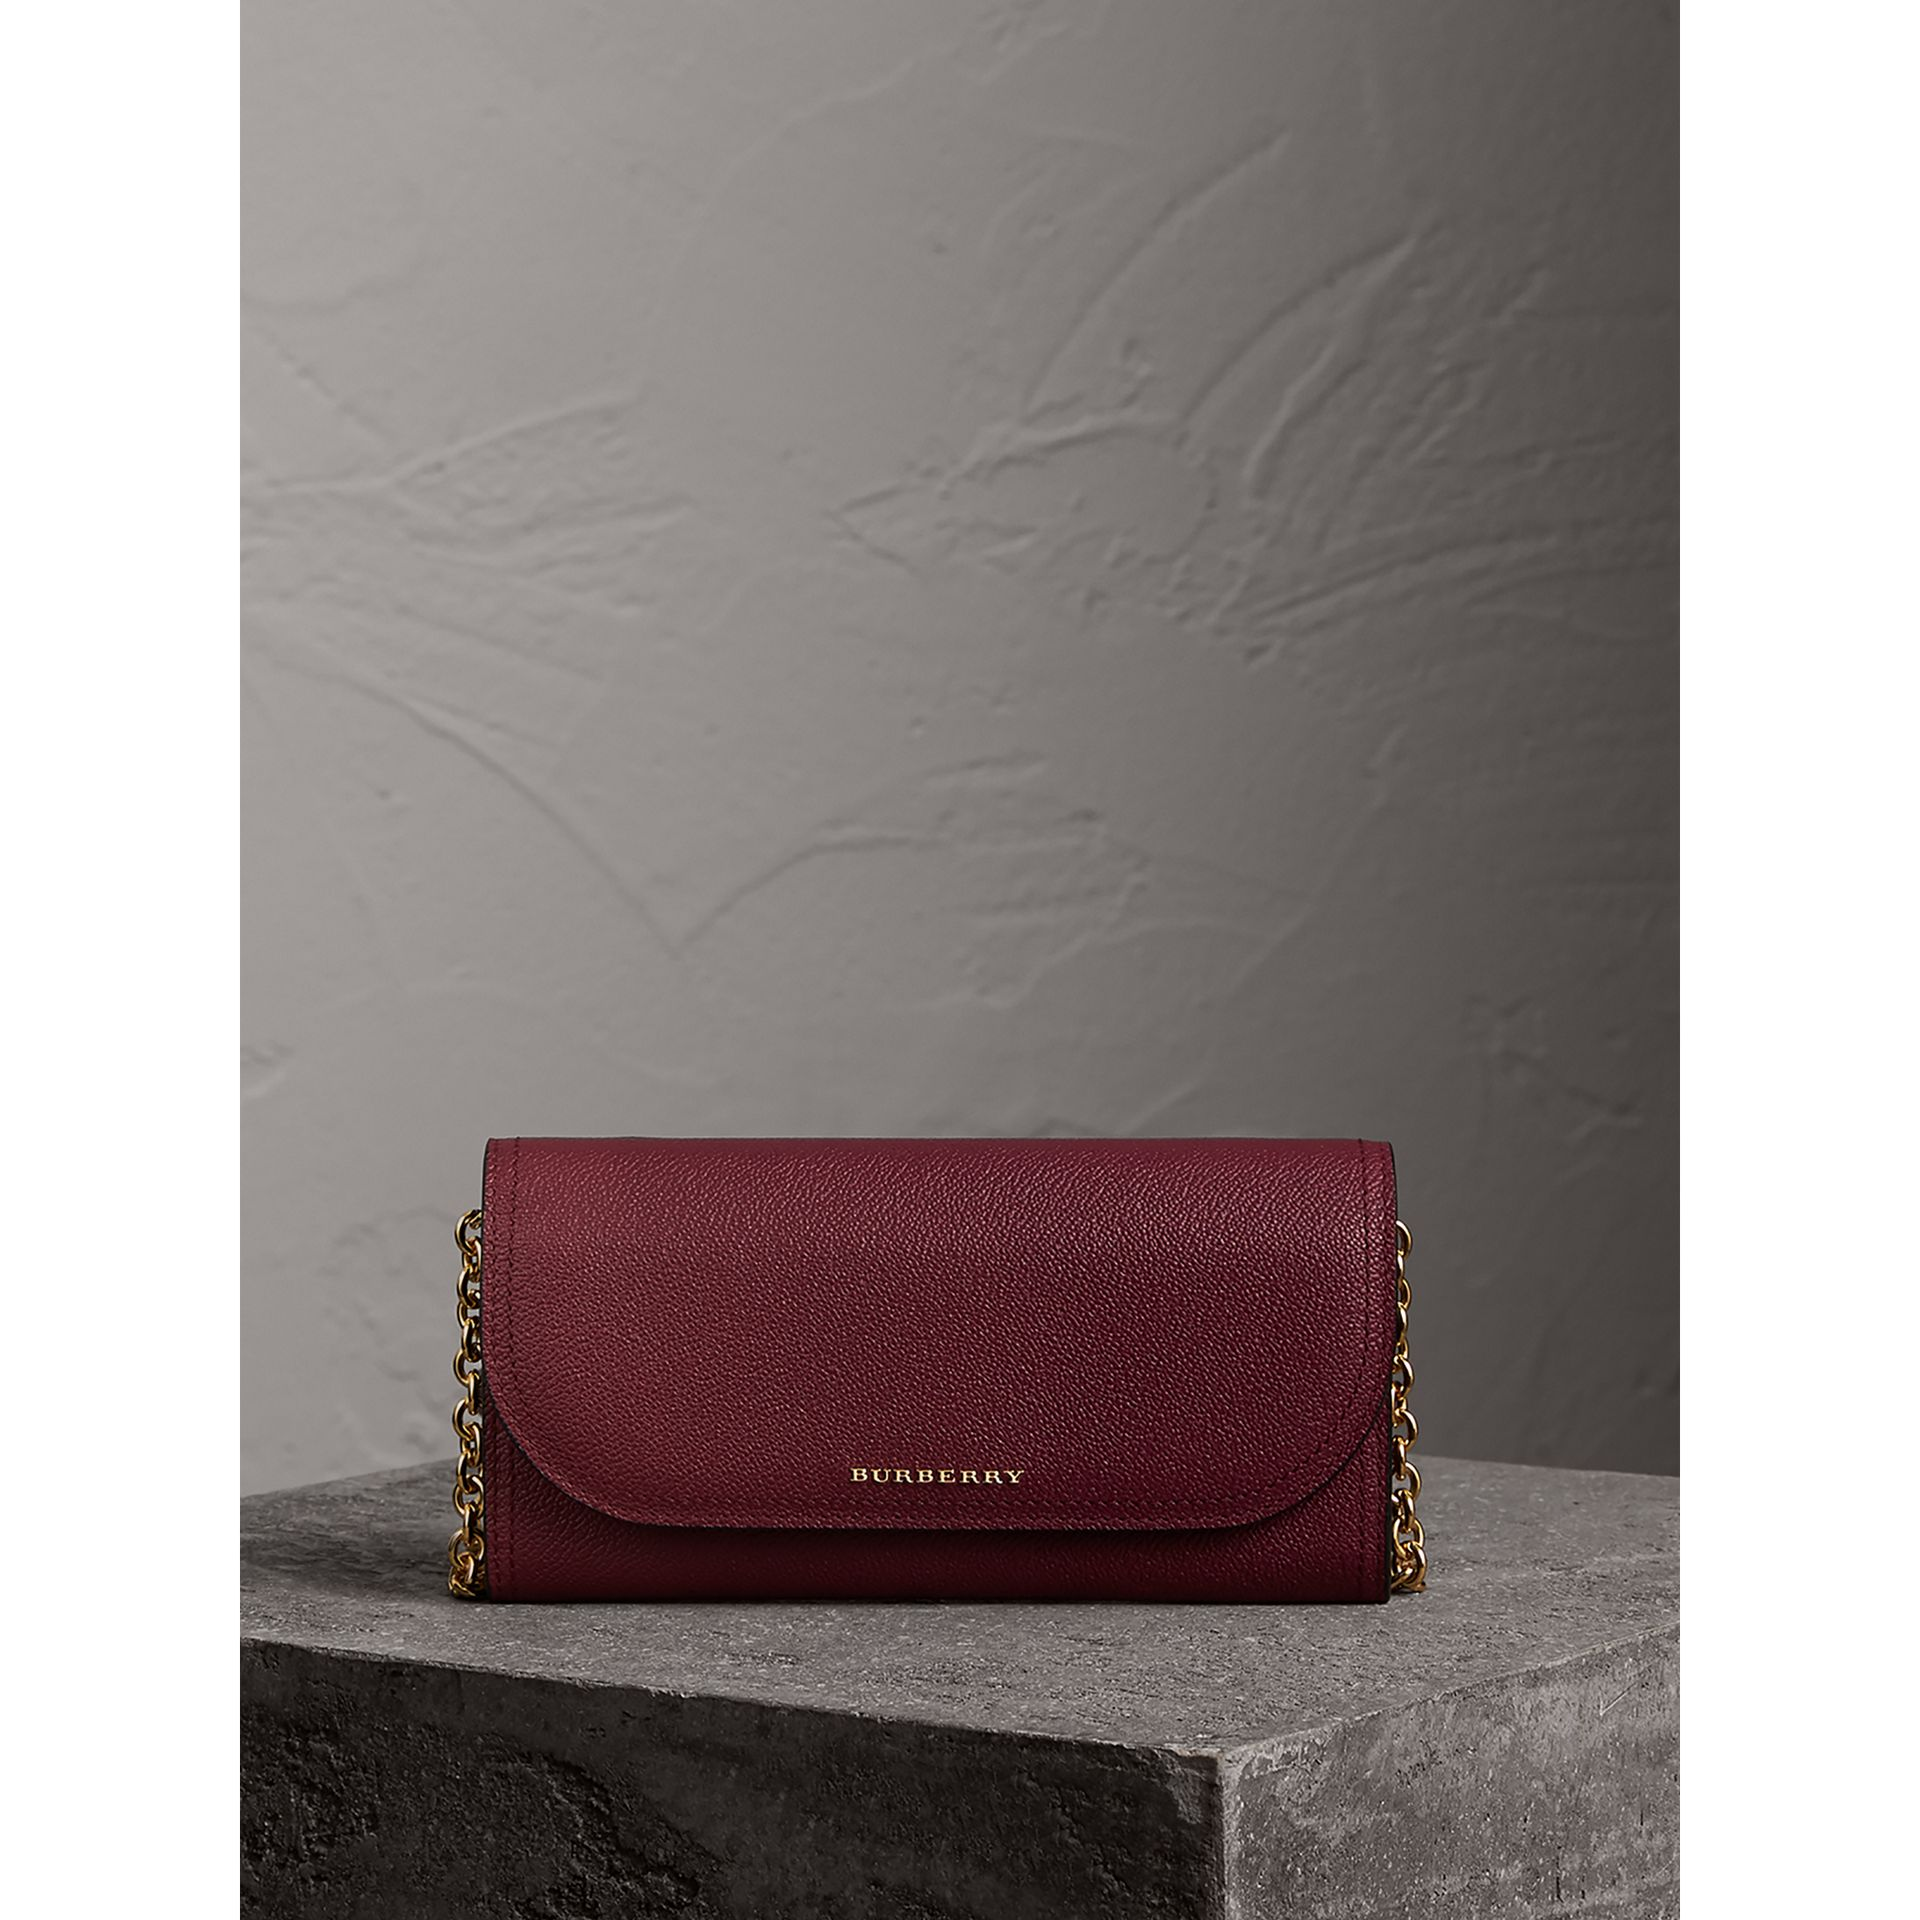 Leather Wallet with Chain in Dark Plum - Women | Burberry - gallery image 5